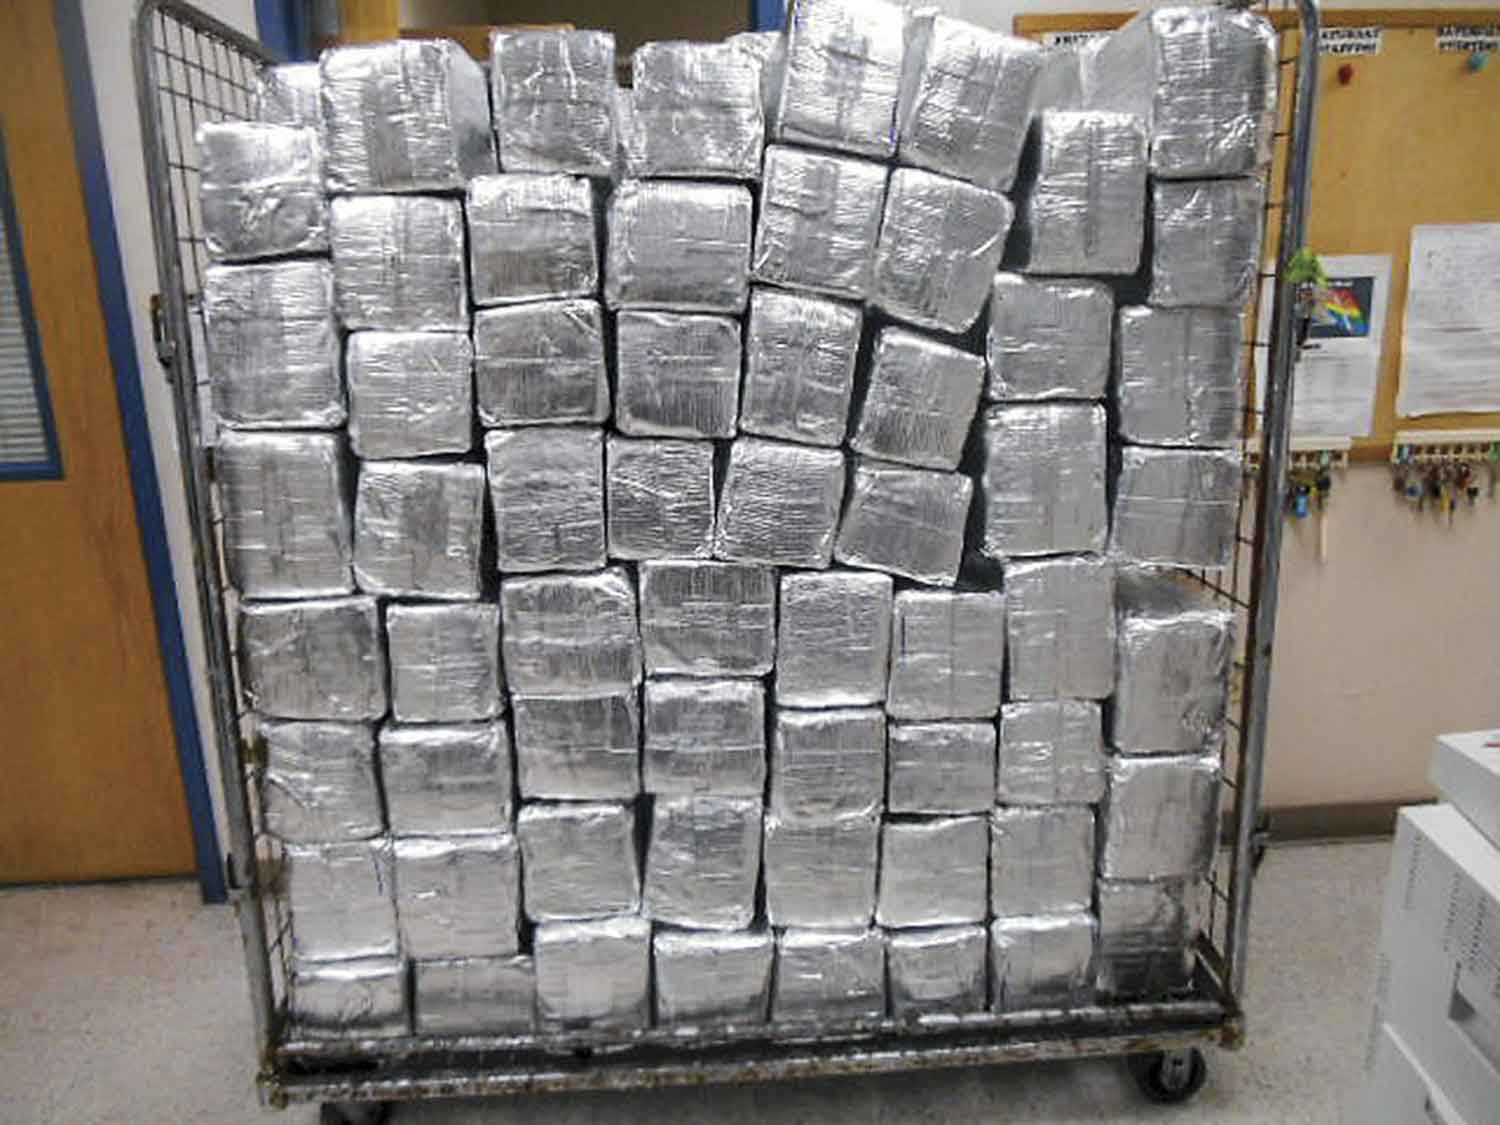 Texas U.S. Customs and Border Protection officers seized over half a ton of alleged marijuana in a commercial shipment of mud floor tiles. Packages containing 1,303 pounds of marijuana were seized. (Photo courtesy of U.S. Customs and Border Protection)